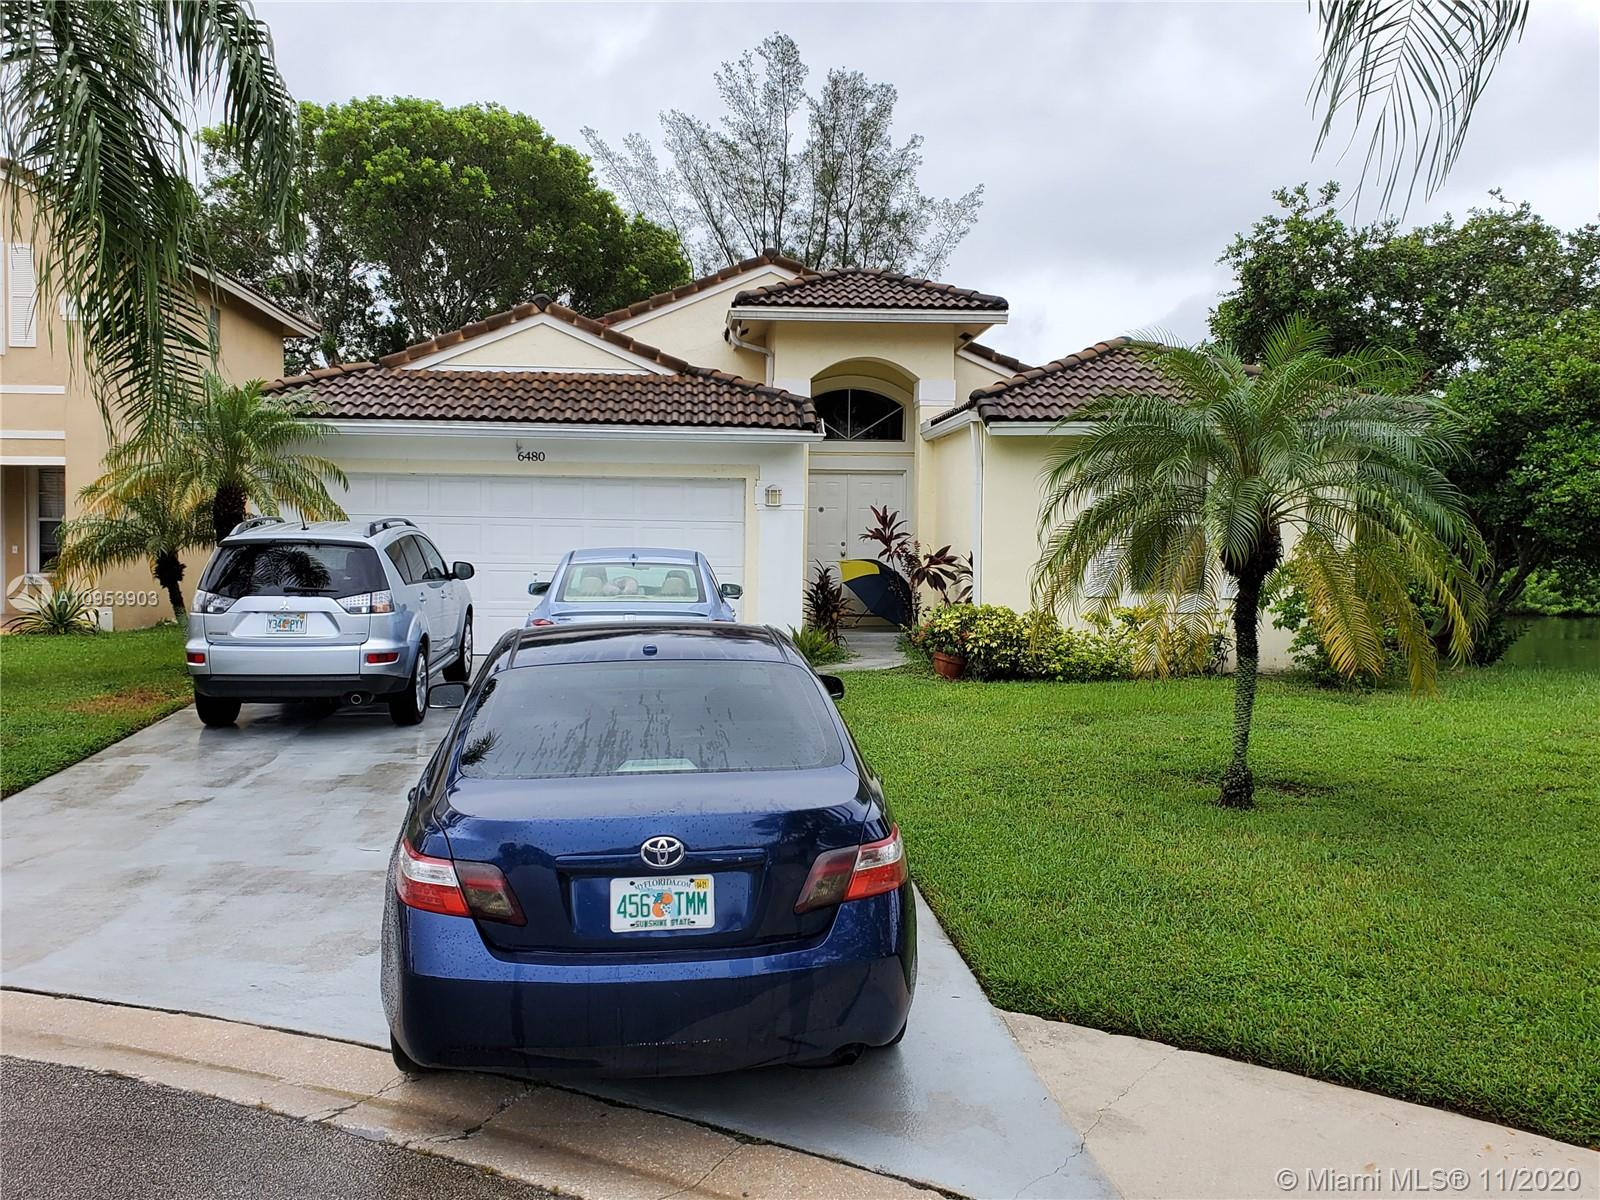 """Well kept 3/2 with split floor plan in cul de sac with expansive lake views in quiet gated community of Coco Bay, Coconut Creek. Master bath has separate shower & tub with dual sinks. Close to A rated schools. Please submit offers on """"AS IS"""" paper. No HOA approval required. See attachments for Seller's Disclosure. Room for pool. 6 ceiling fans. Supra in place but since owners will probably be home PLEASE ring door bell first and use the Supra only if no answer to the door. Thanks. A/C is 3 years old and water heater is 1 year new. Also new garage door motor and springs installed 11/11. Flood Zone X."""